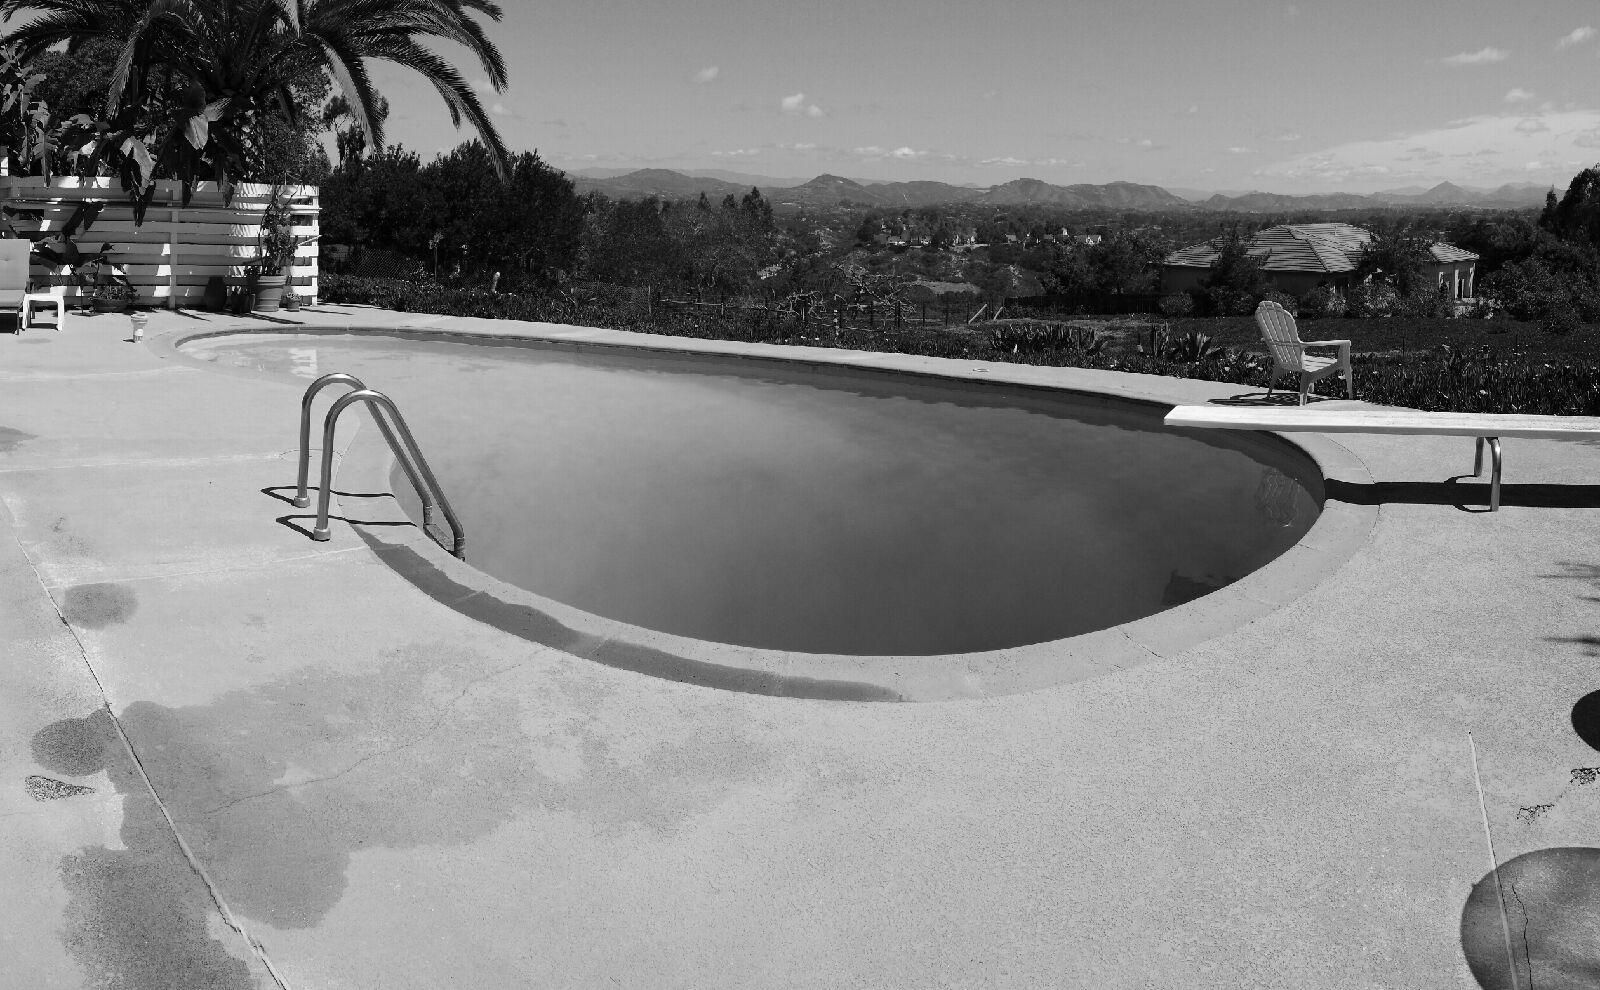 Here S A Retro Look At The 30 000 Gallon Pool We Just Recycled